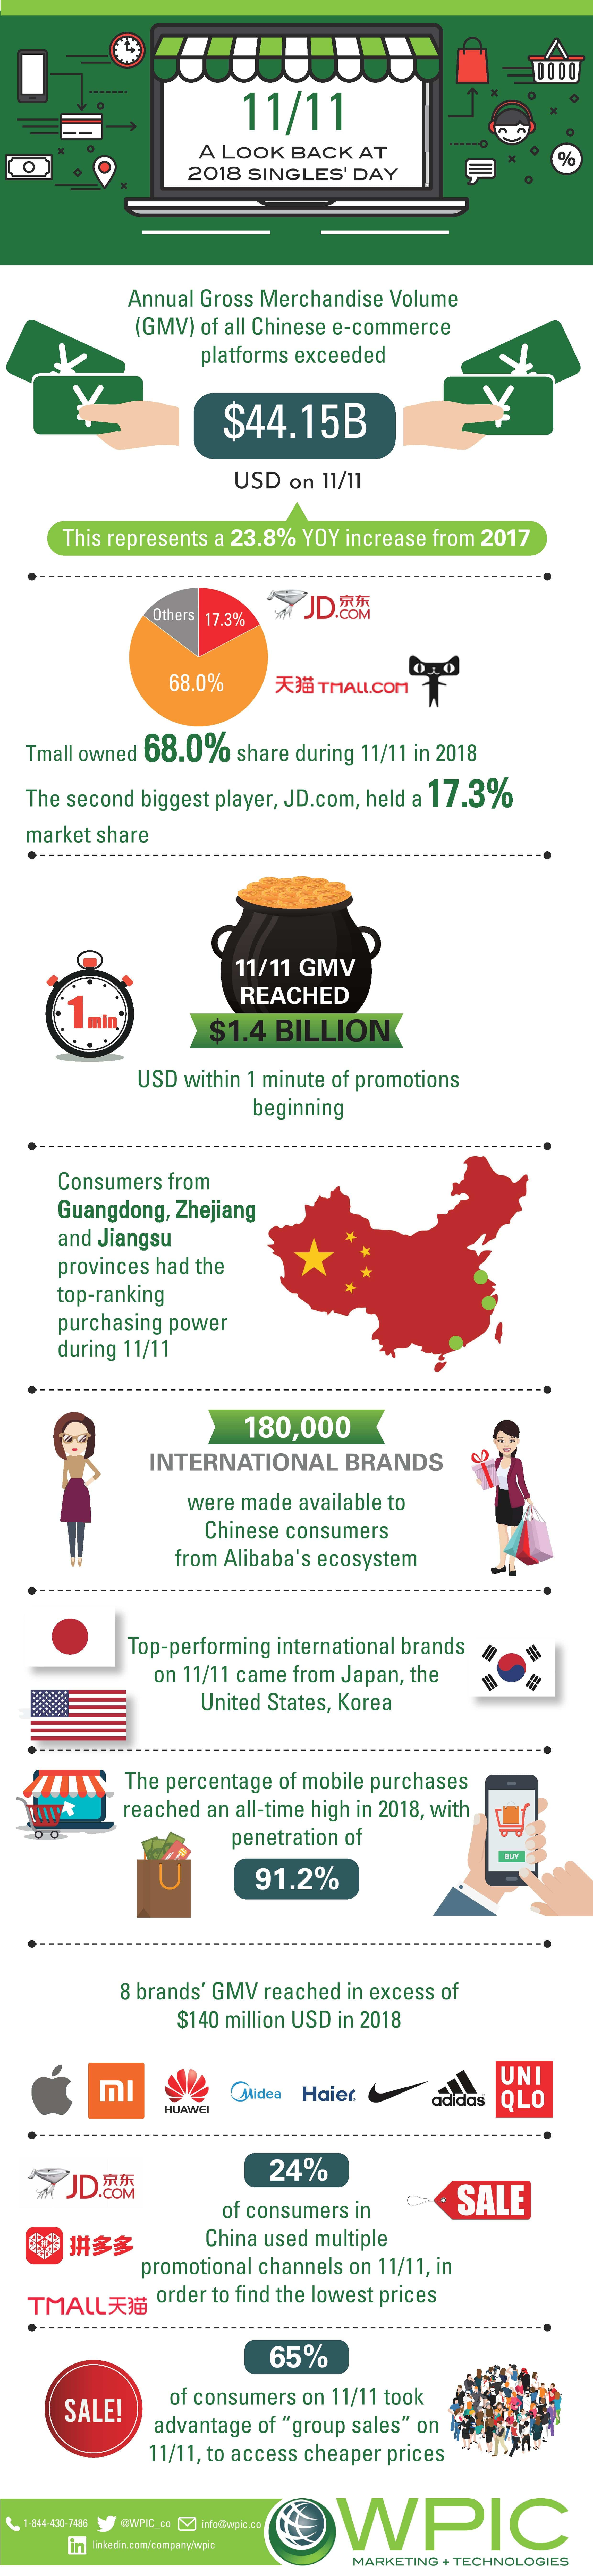 11/11 A look back at 2018 Singles' Day infographic